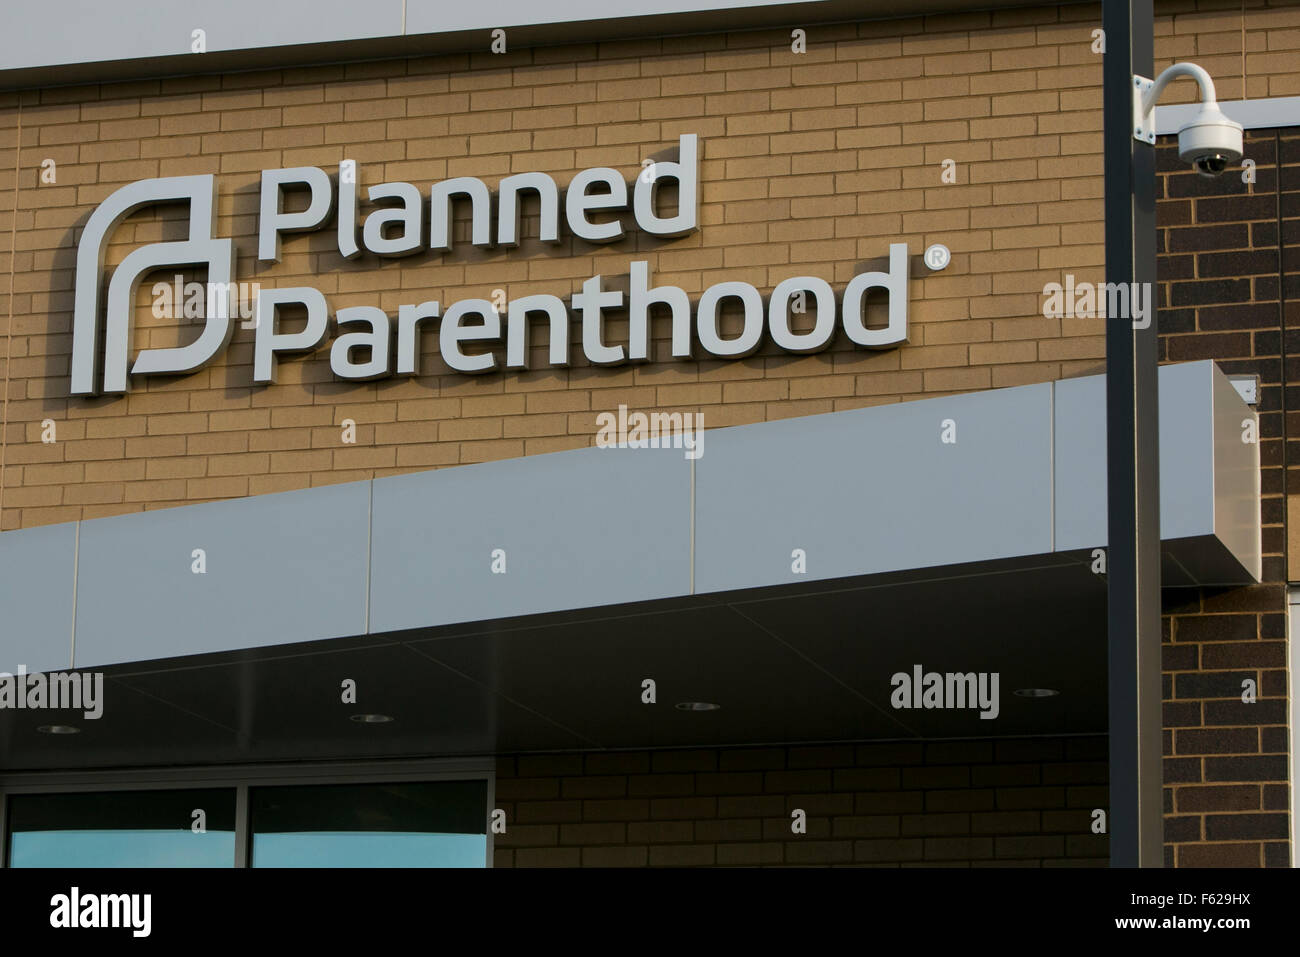 A logo sign outside of a Planned Parenthood medical clinic in St. Paul, Minnesota on October 25, 2015. - Stock Image